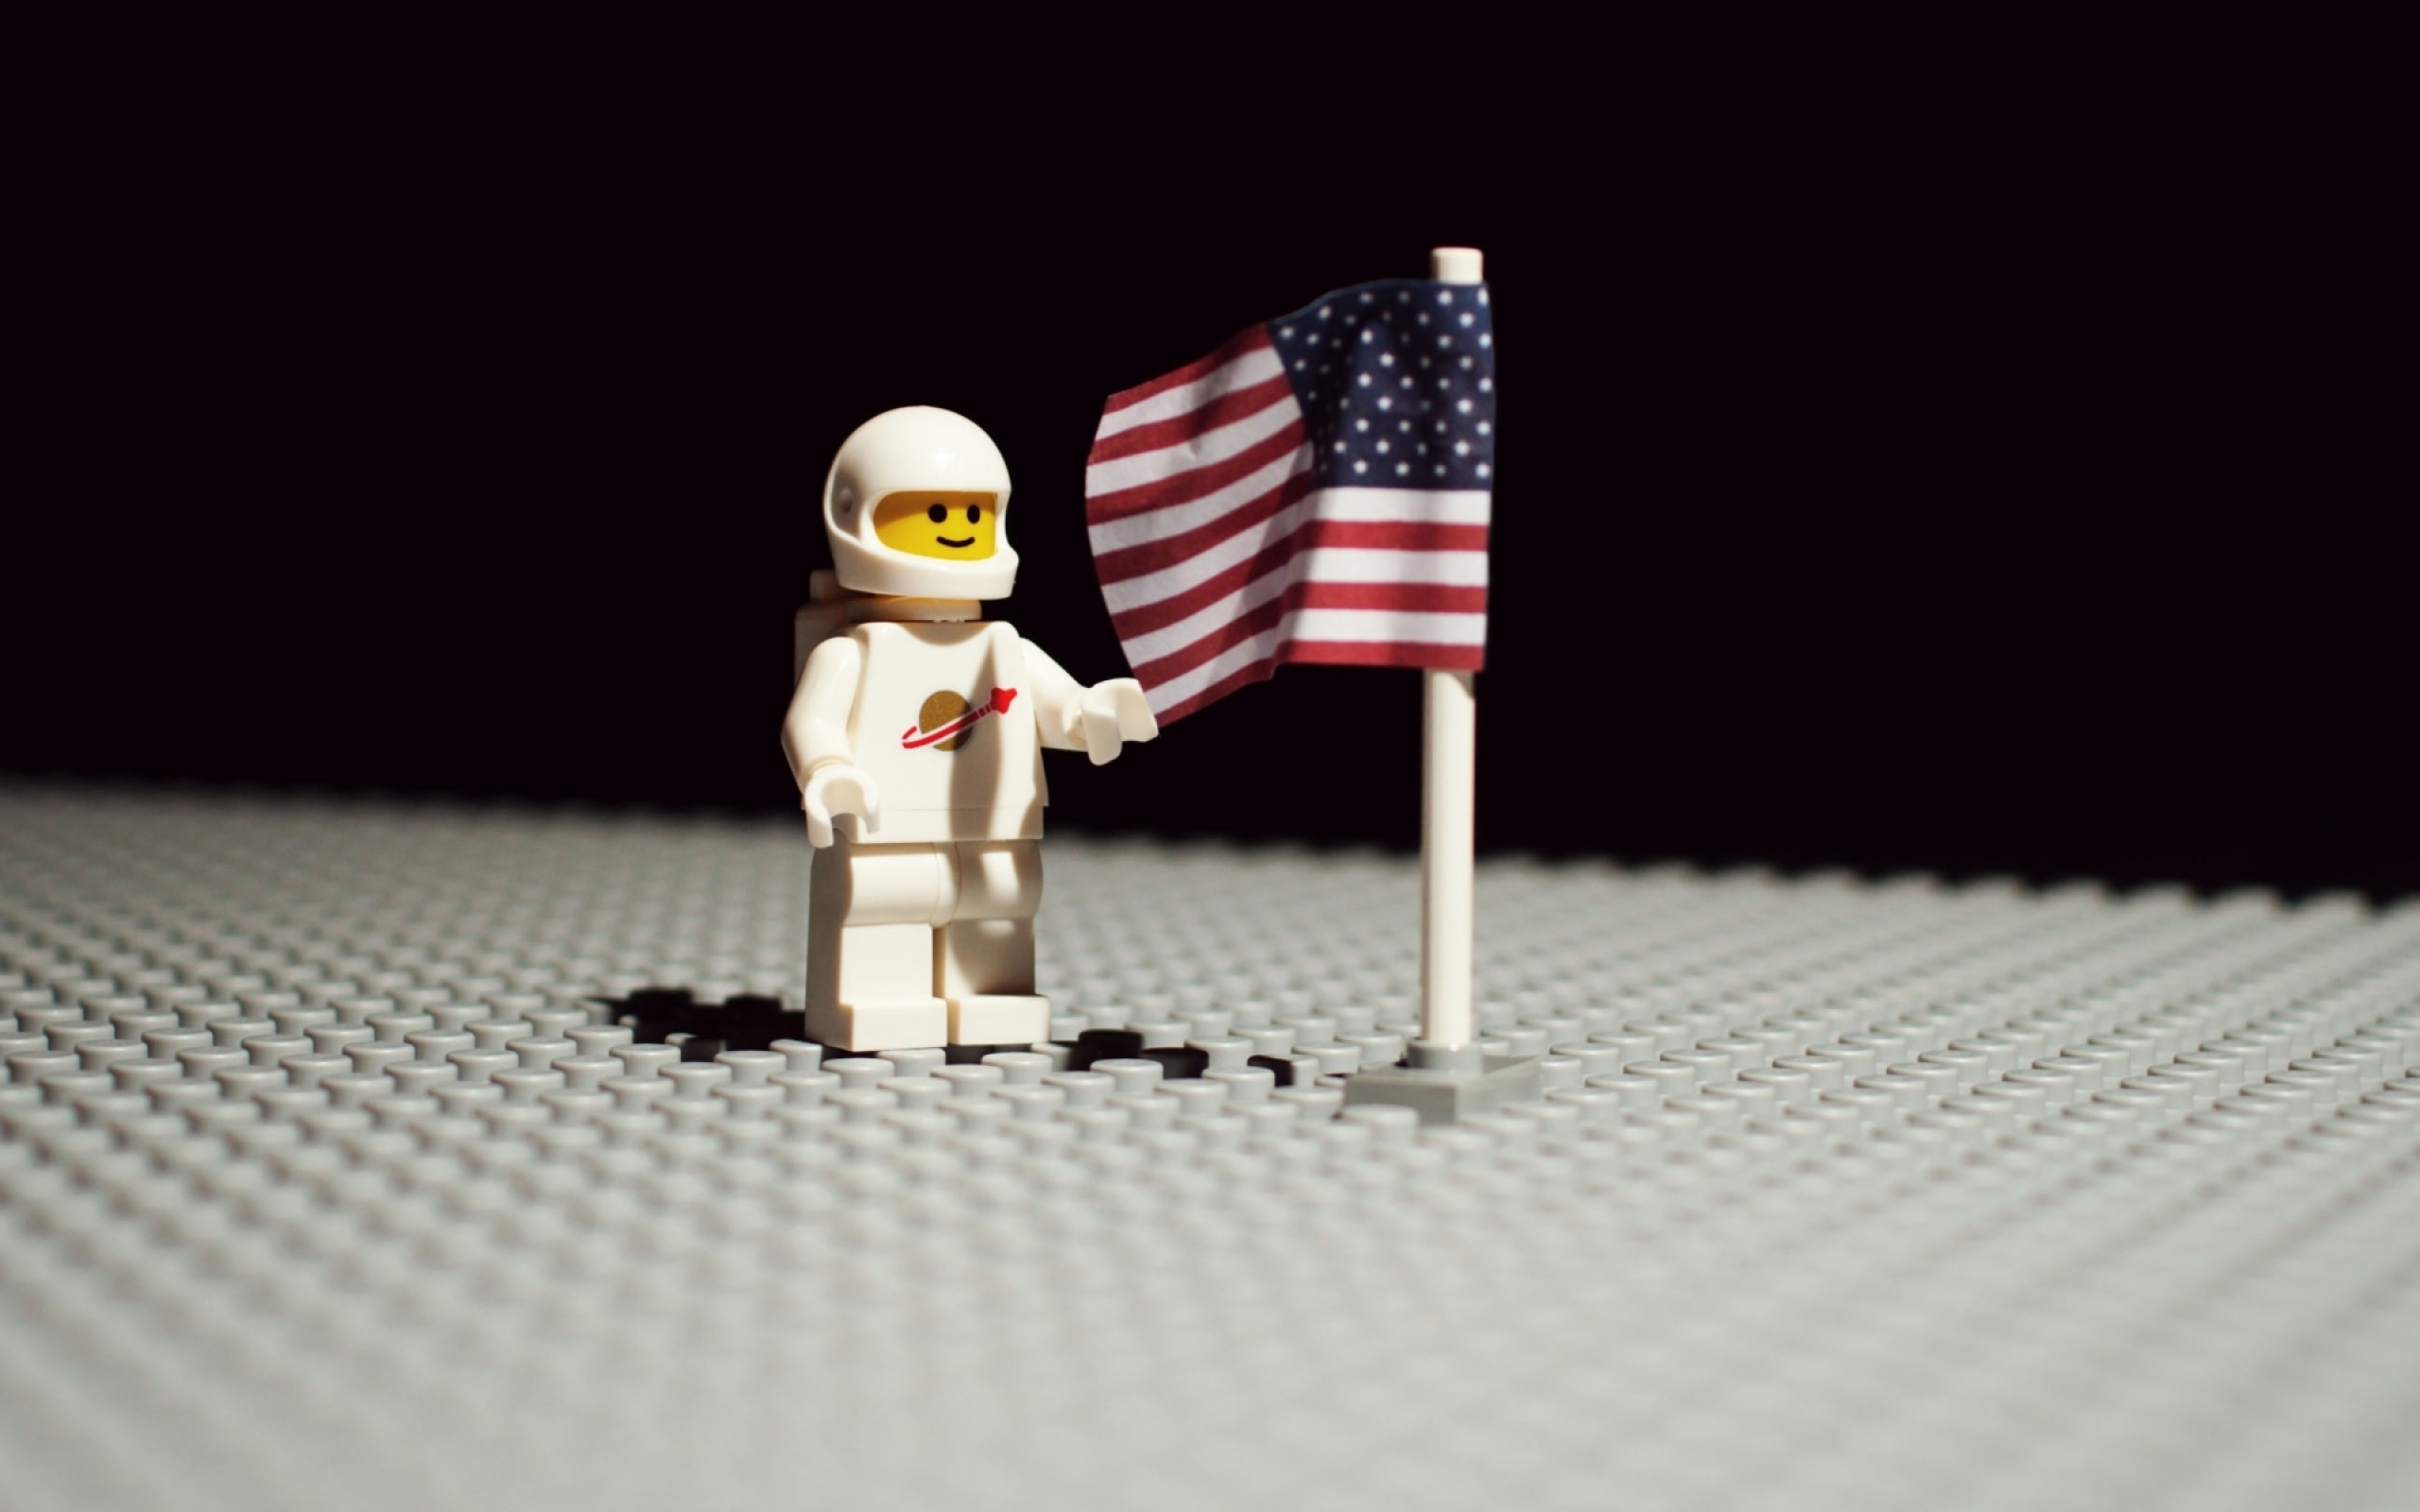 lego astronaut full hd wallpaper and background image | 2560x1600